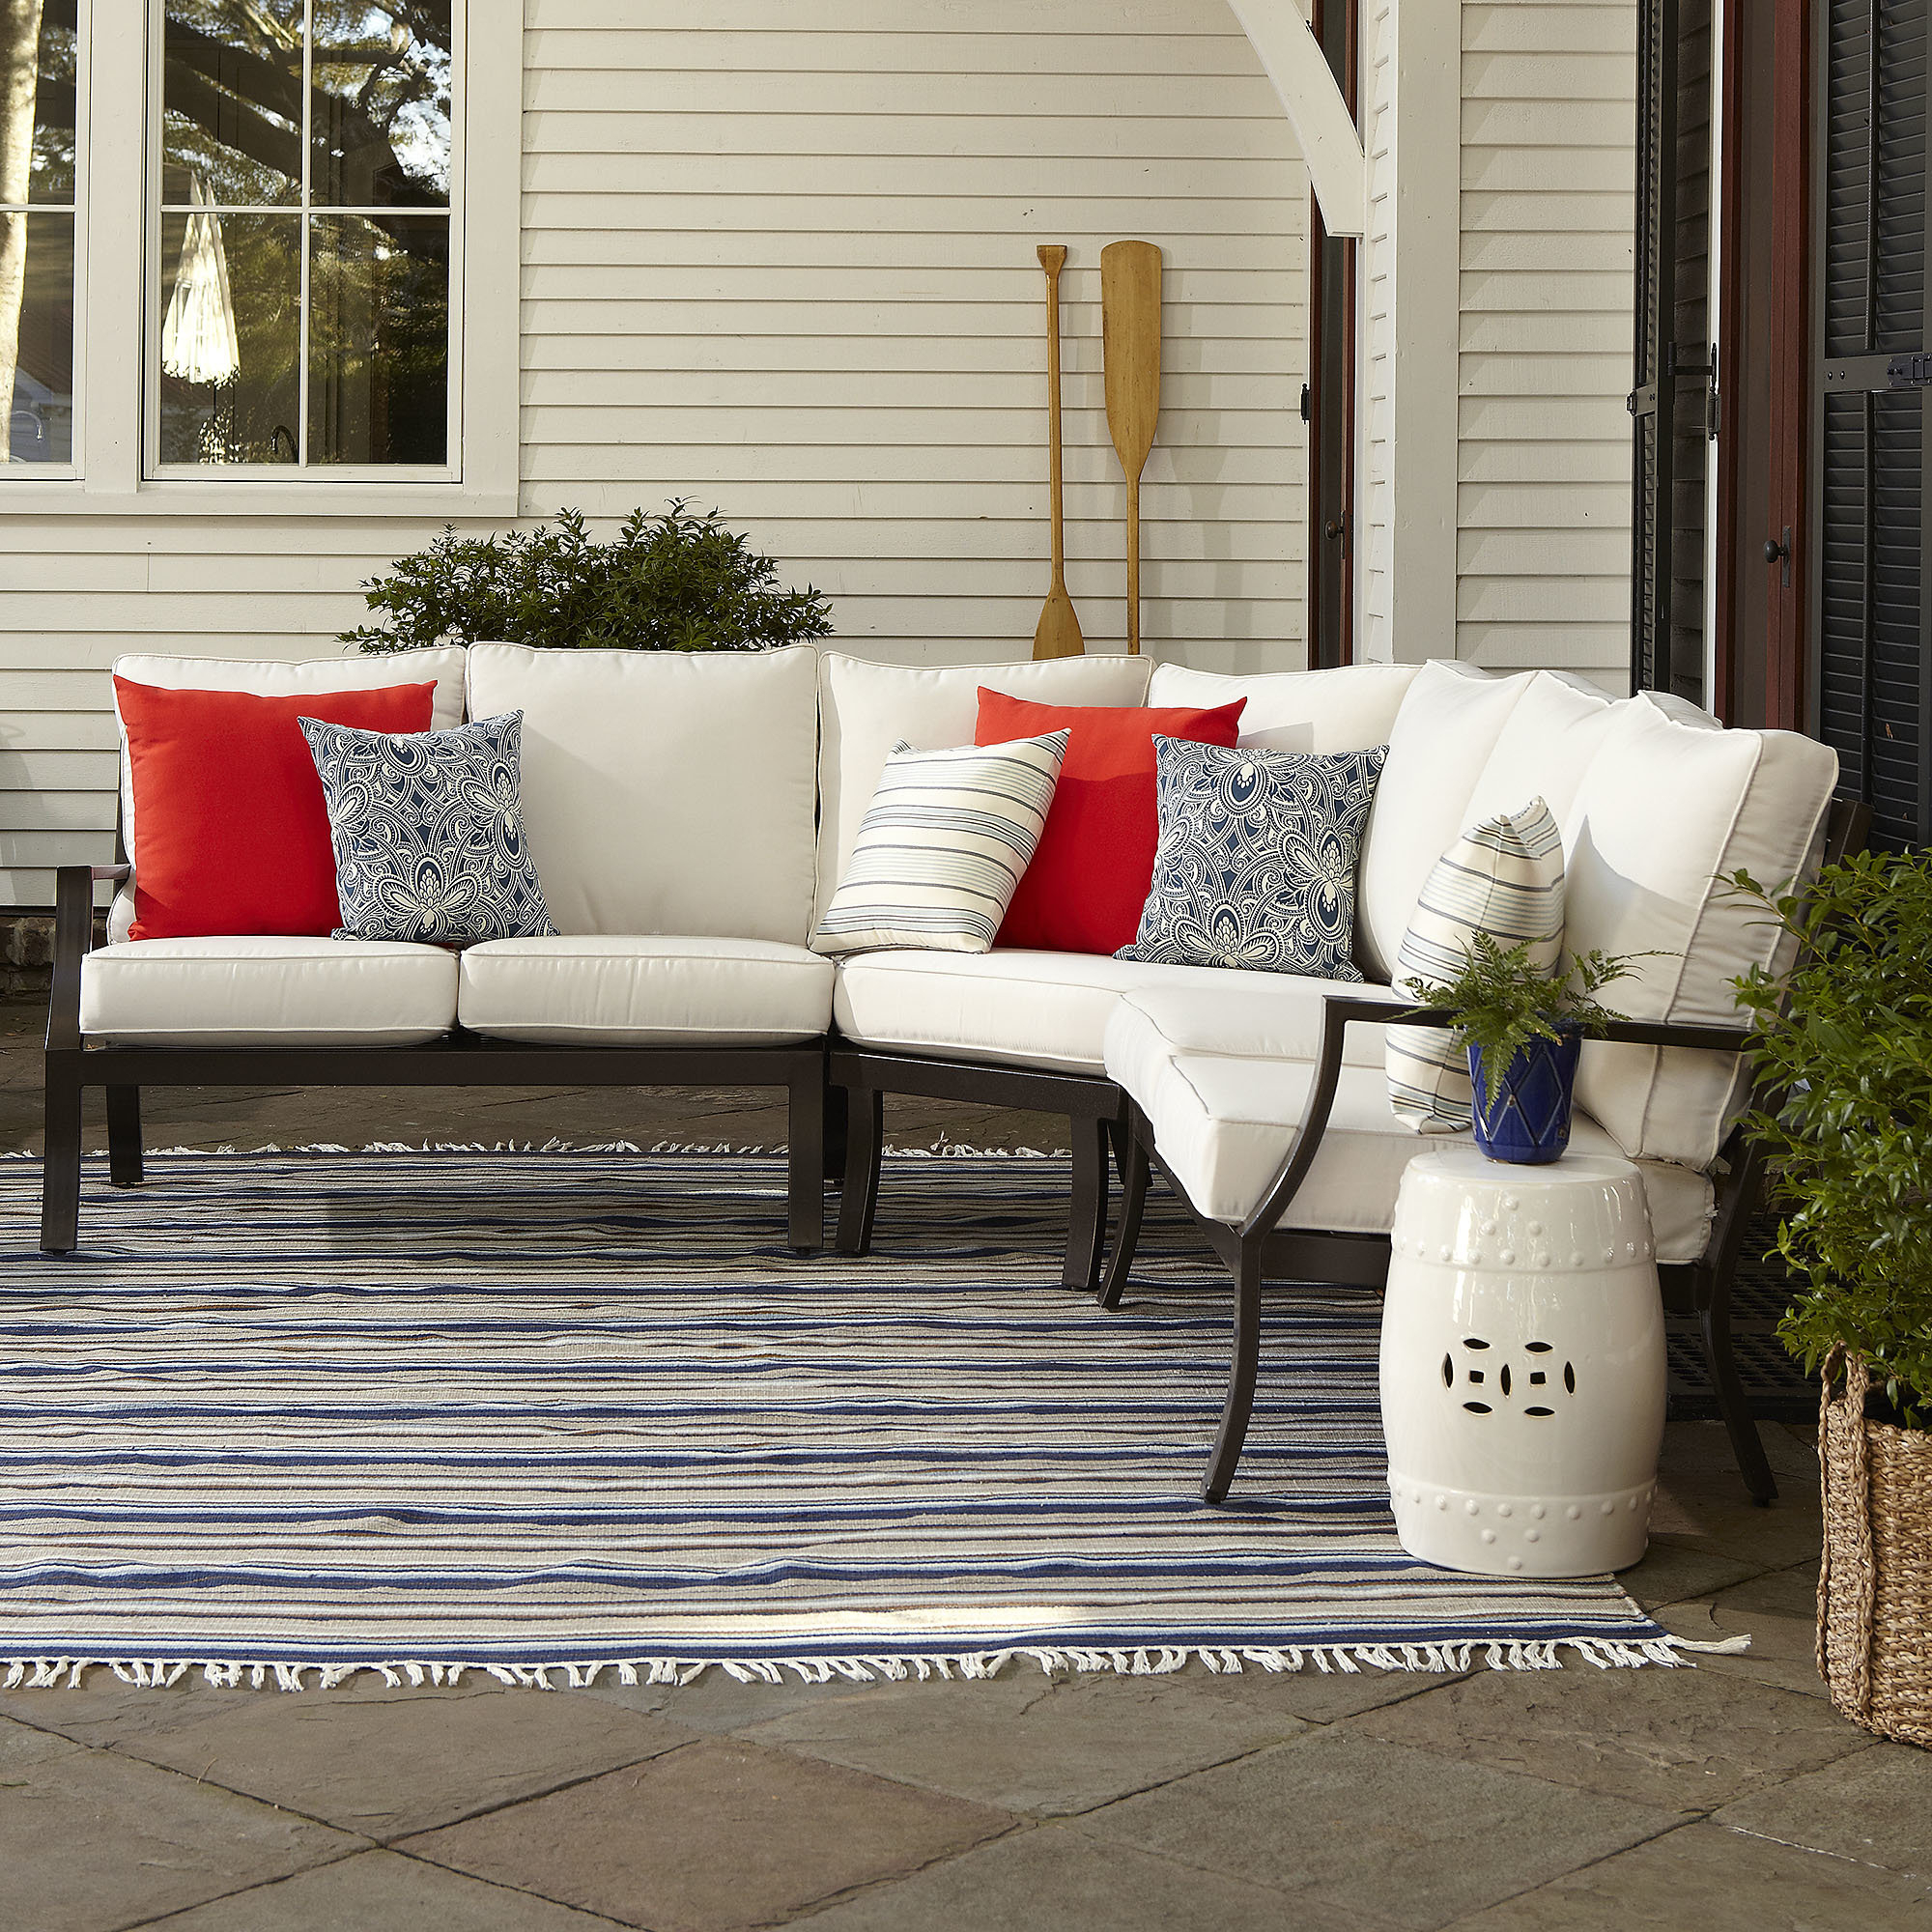 Favorite Keiran Patio Sofas With Cushions With Regard To Kelsie Patio Sectional With Sunbrella Cushions (View 14 of 20)